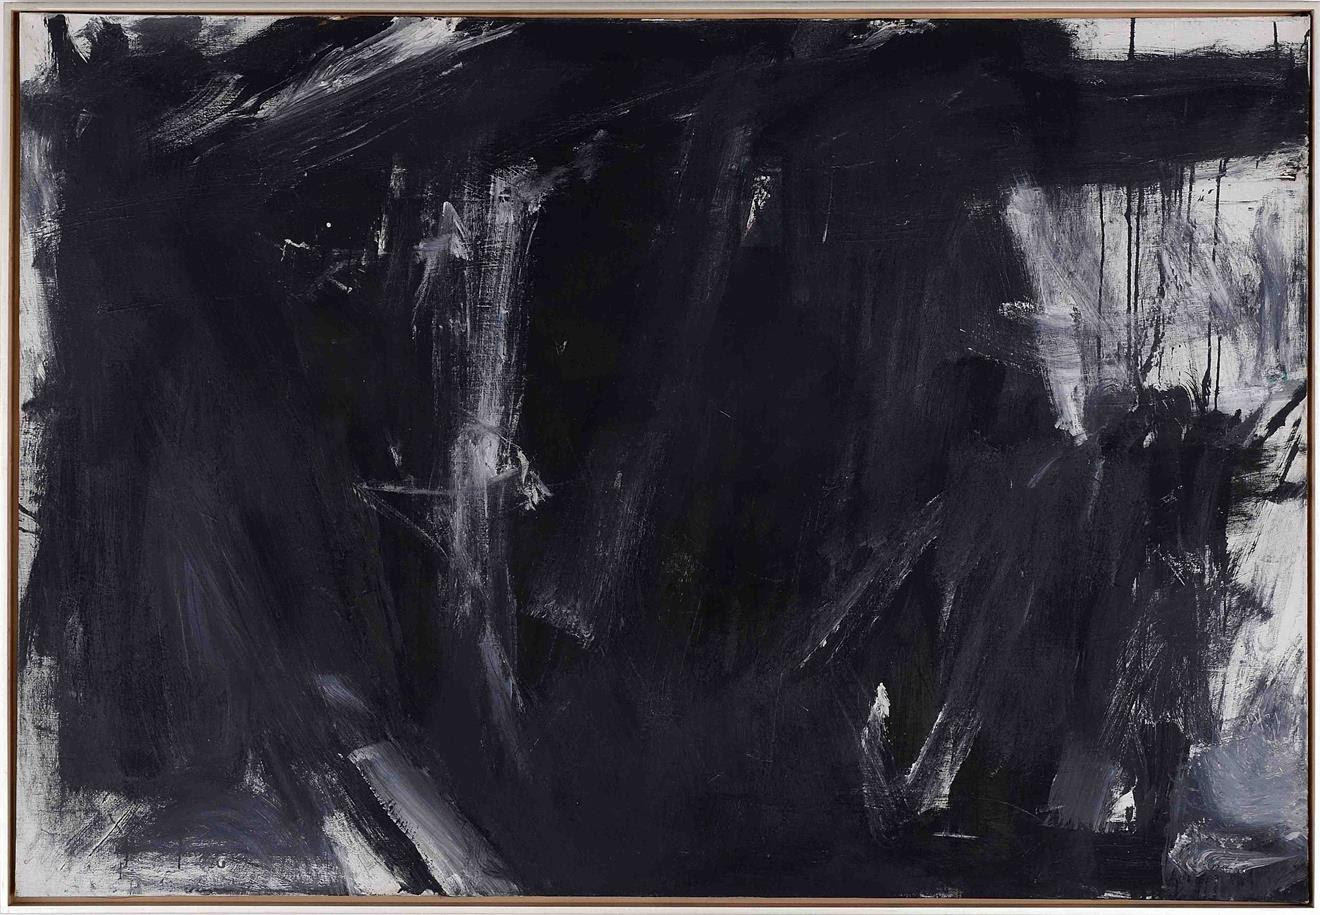 Masterpiece Theatre: $8 M. Kline Sells at Frieze Masters; $15 M. Dubuffet, Film Greats On Offer